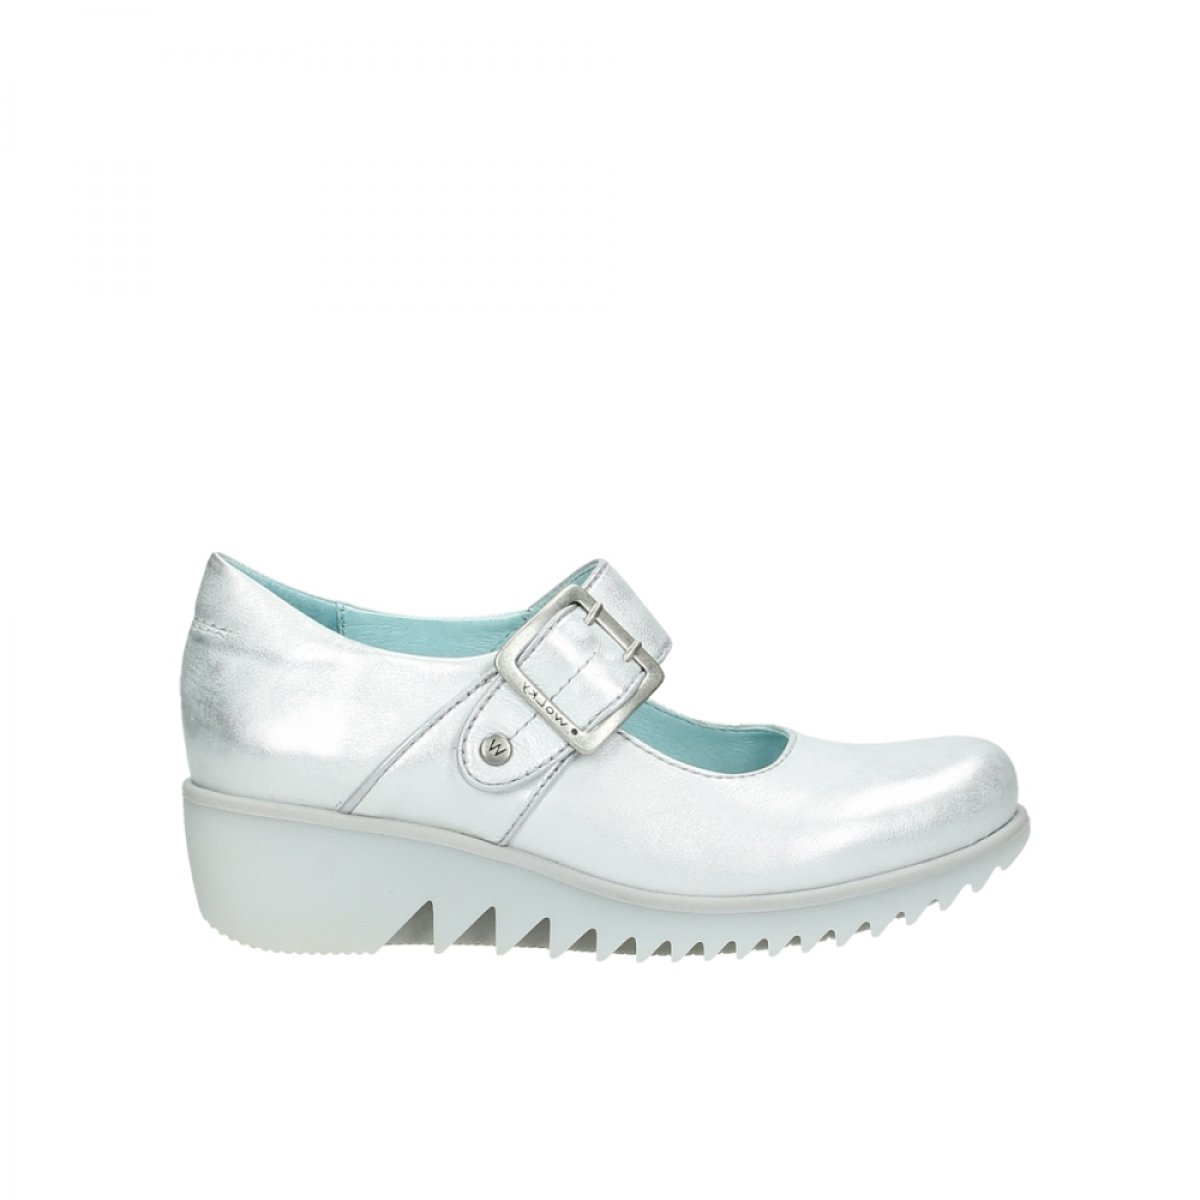 Wolky Comfort Mary Janes Silky B00WDW6RQO 42 M EU 30130 Silver Leather